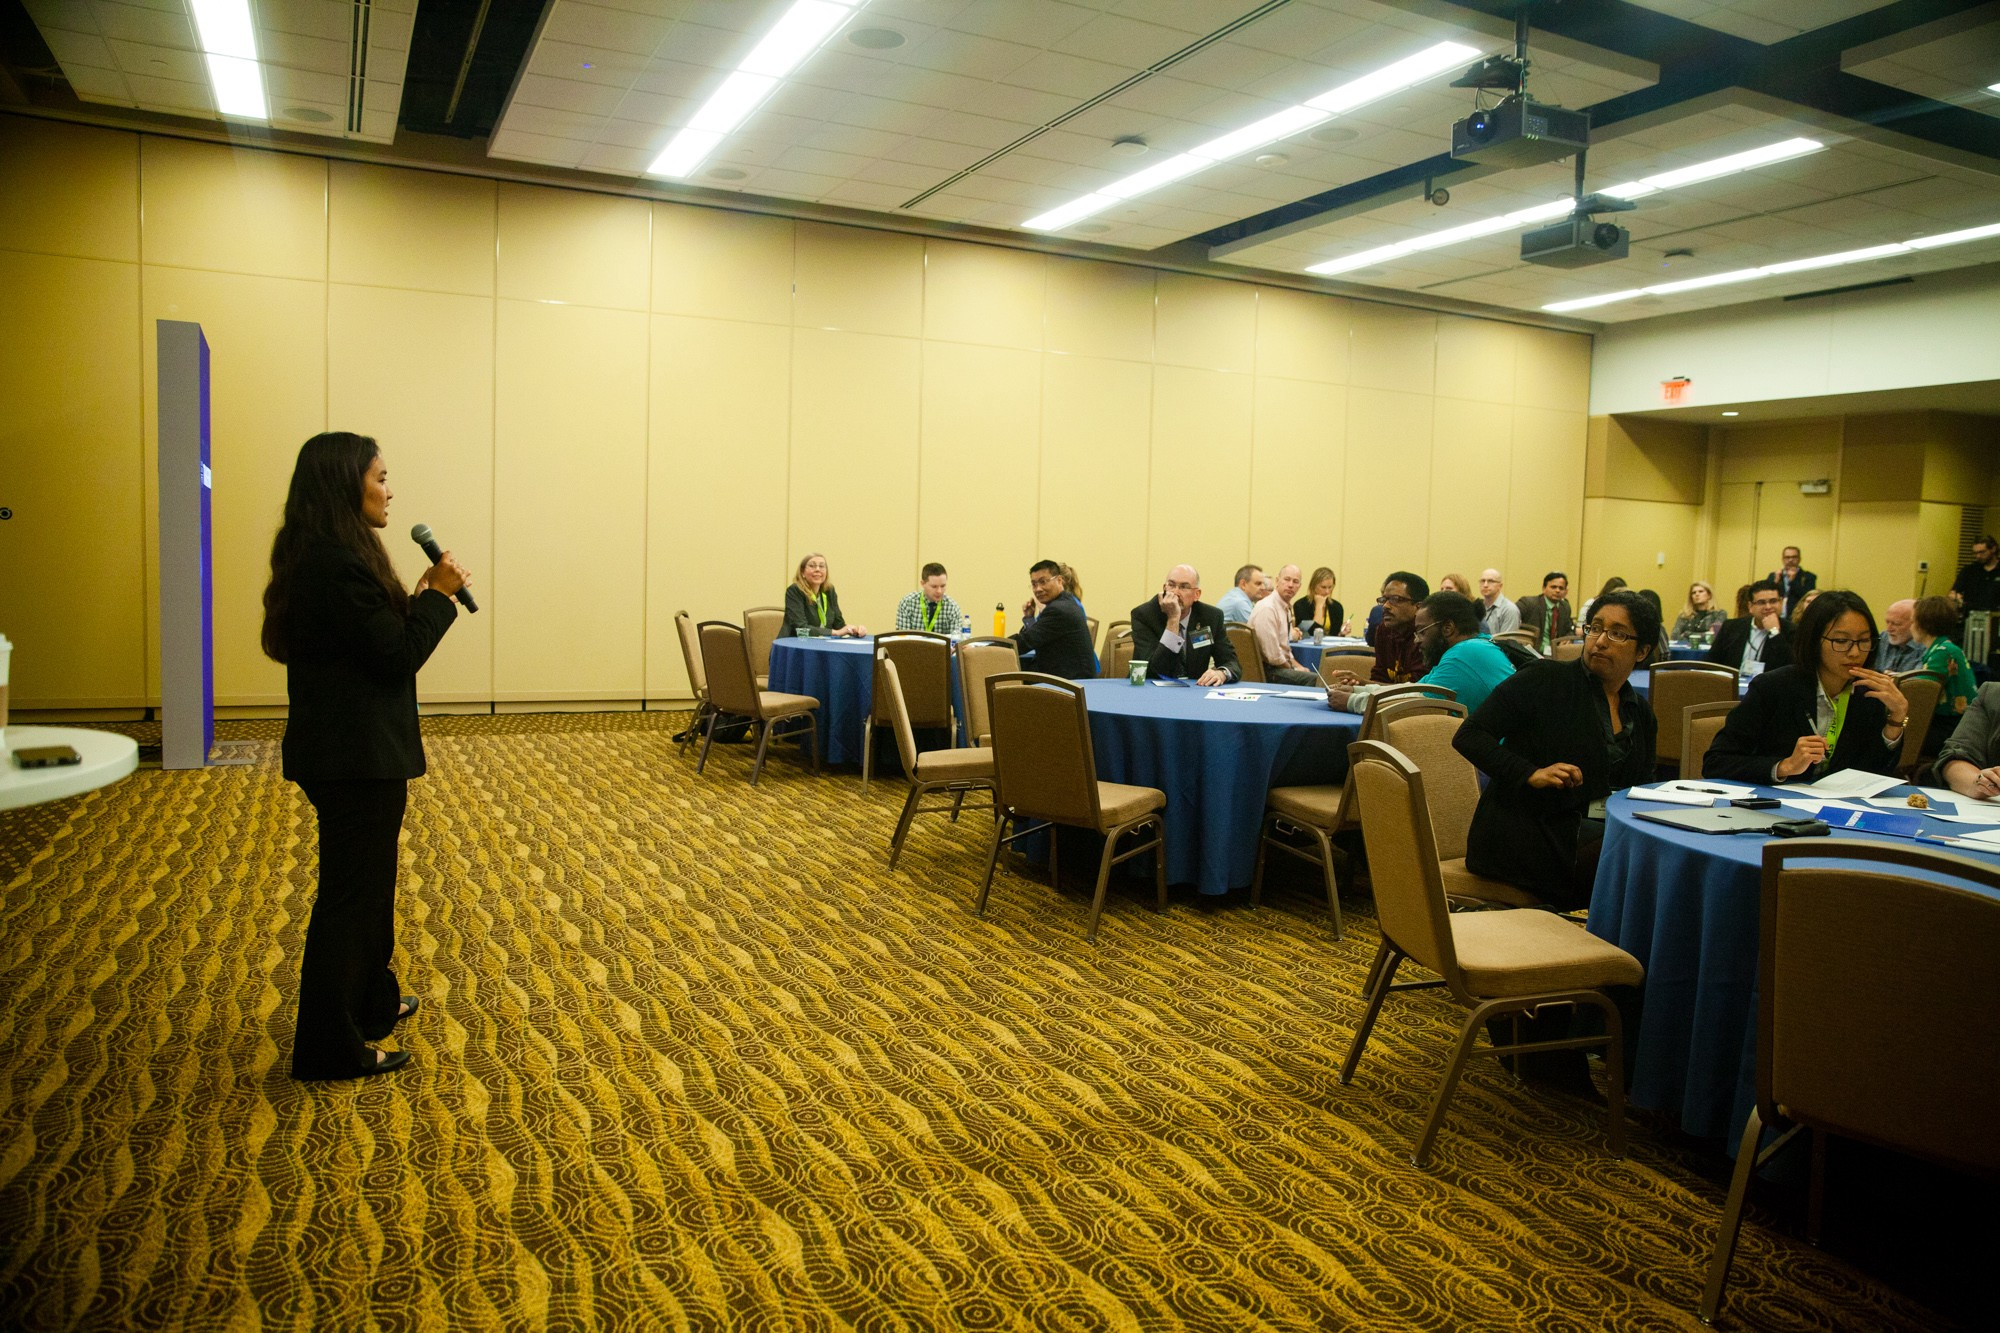 Anisha speaking at the breakout session